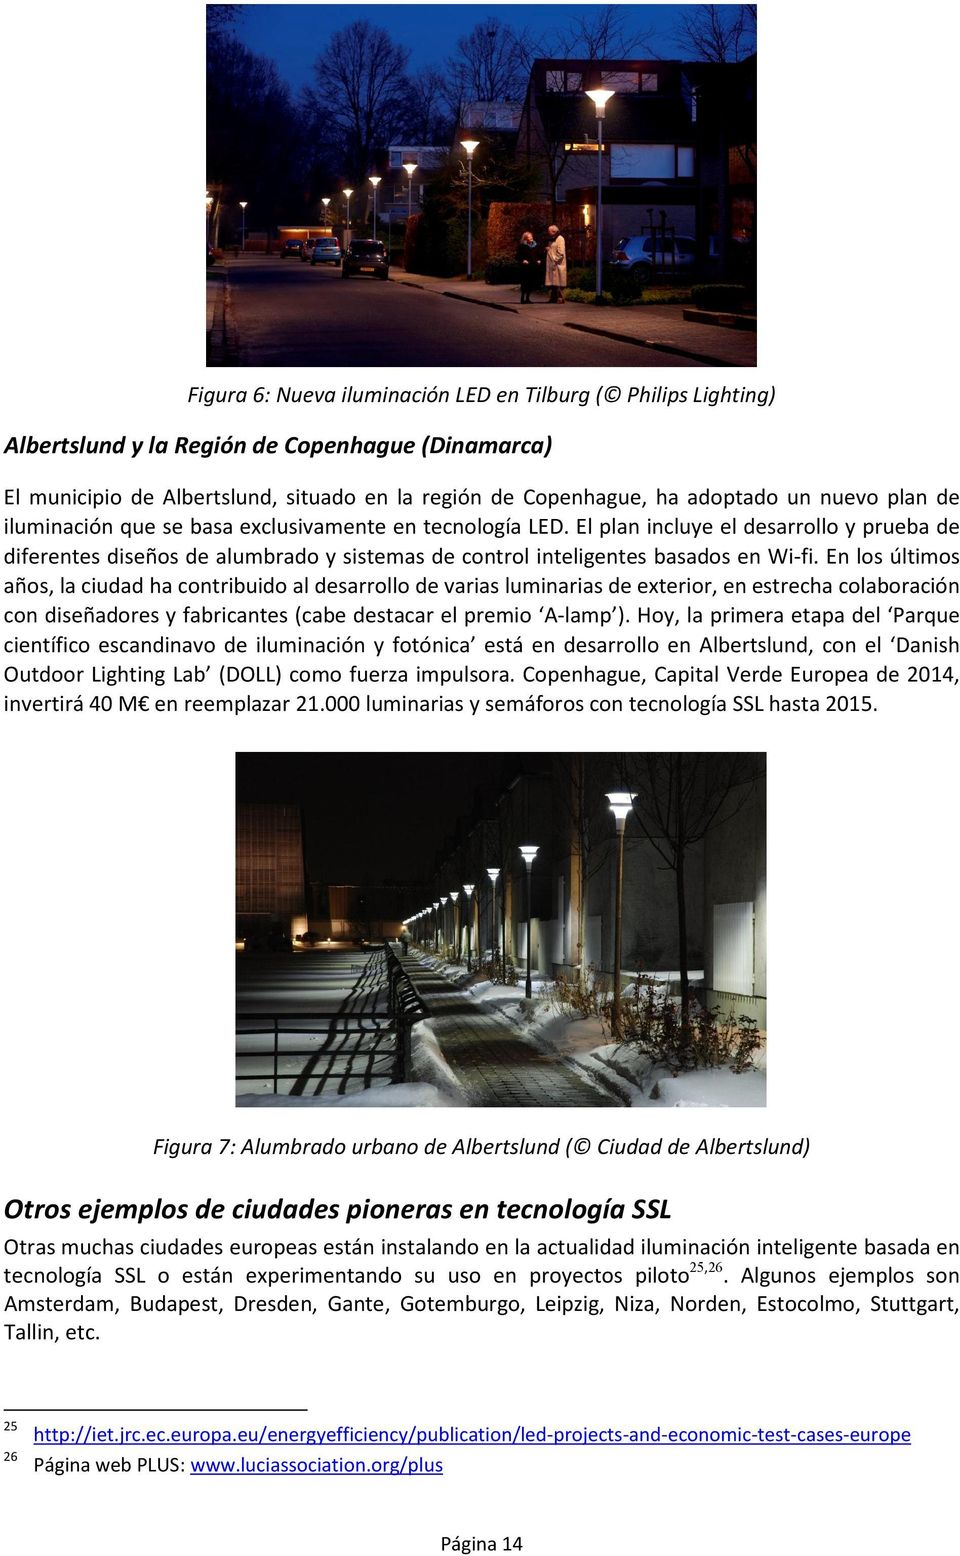 Estas acciones incluyen iluminación LED interior y exterior en ciudades 28 (LED4ART 29, ILLUMINATE 30, LITES 31 ).